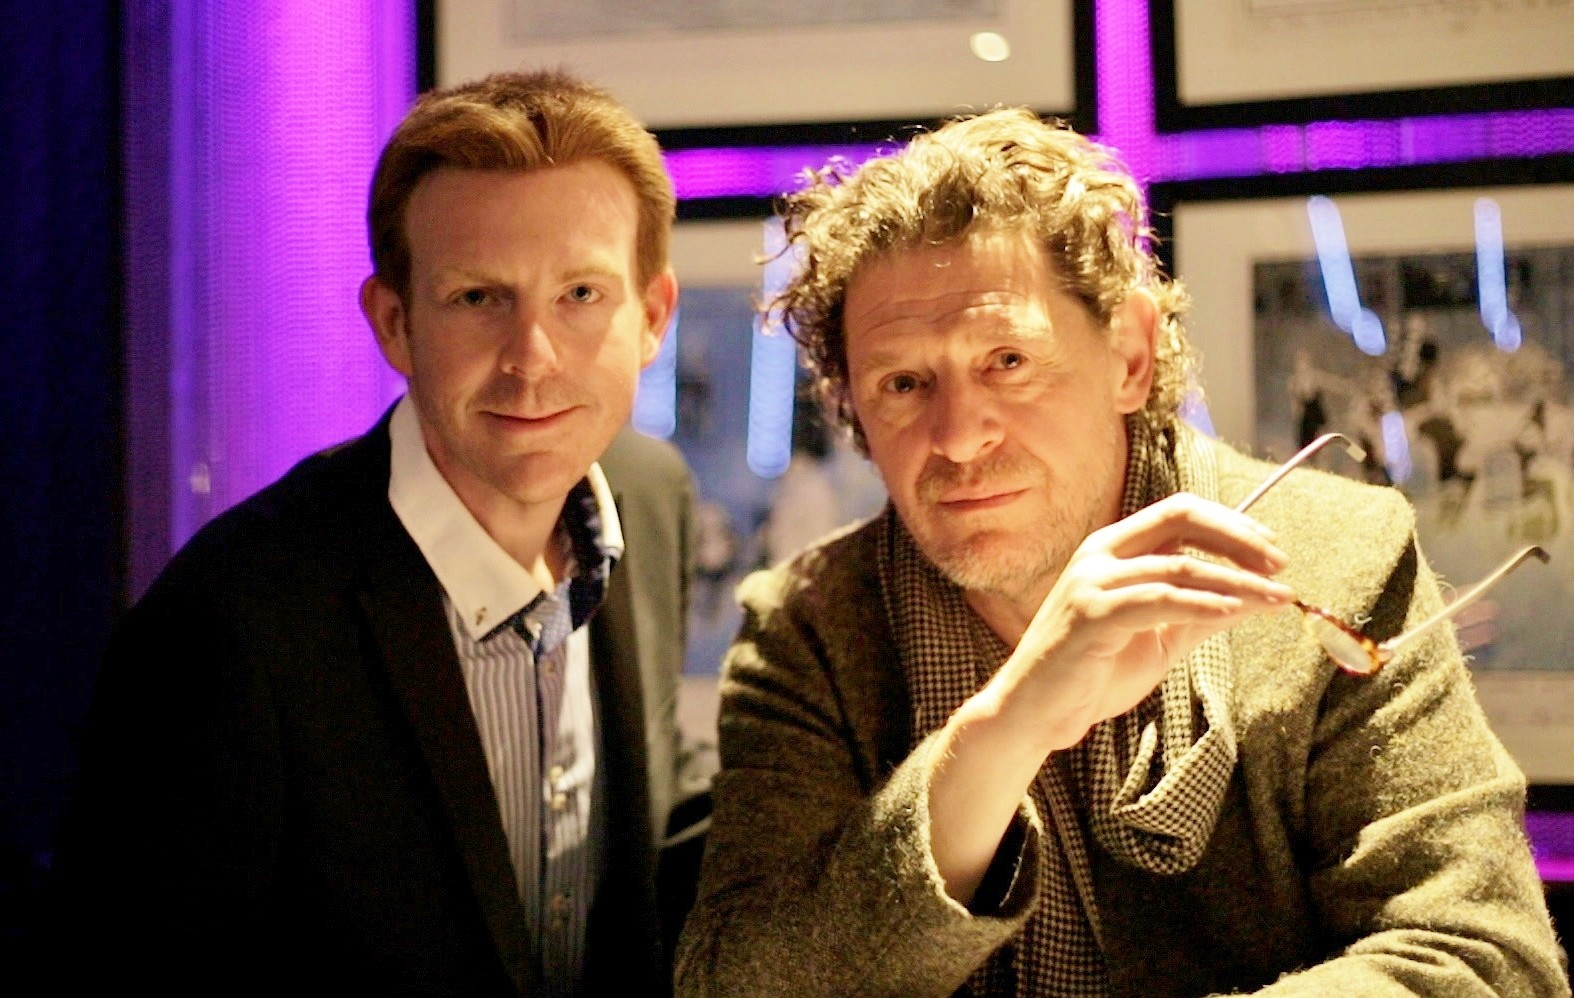 Enjoy Celebrity Radio's Masterchef Marco Pierre White Exclusive Life Story Interview…. Marco Pierre White is the UK's most charismatic, highly respected & innovative chefs of […]